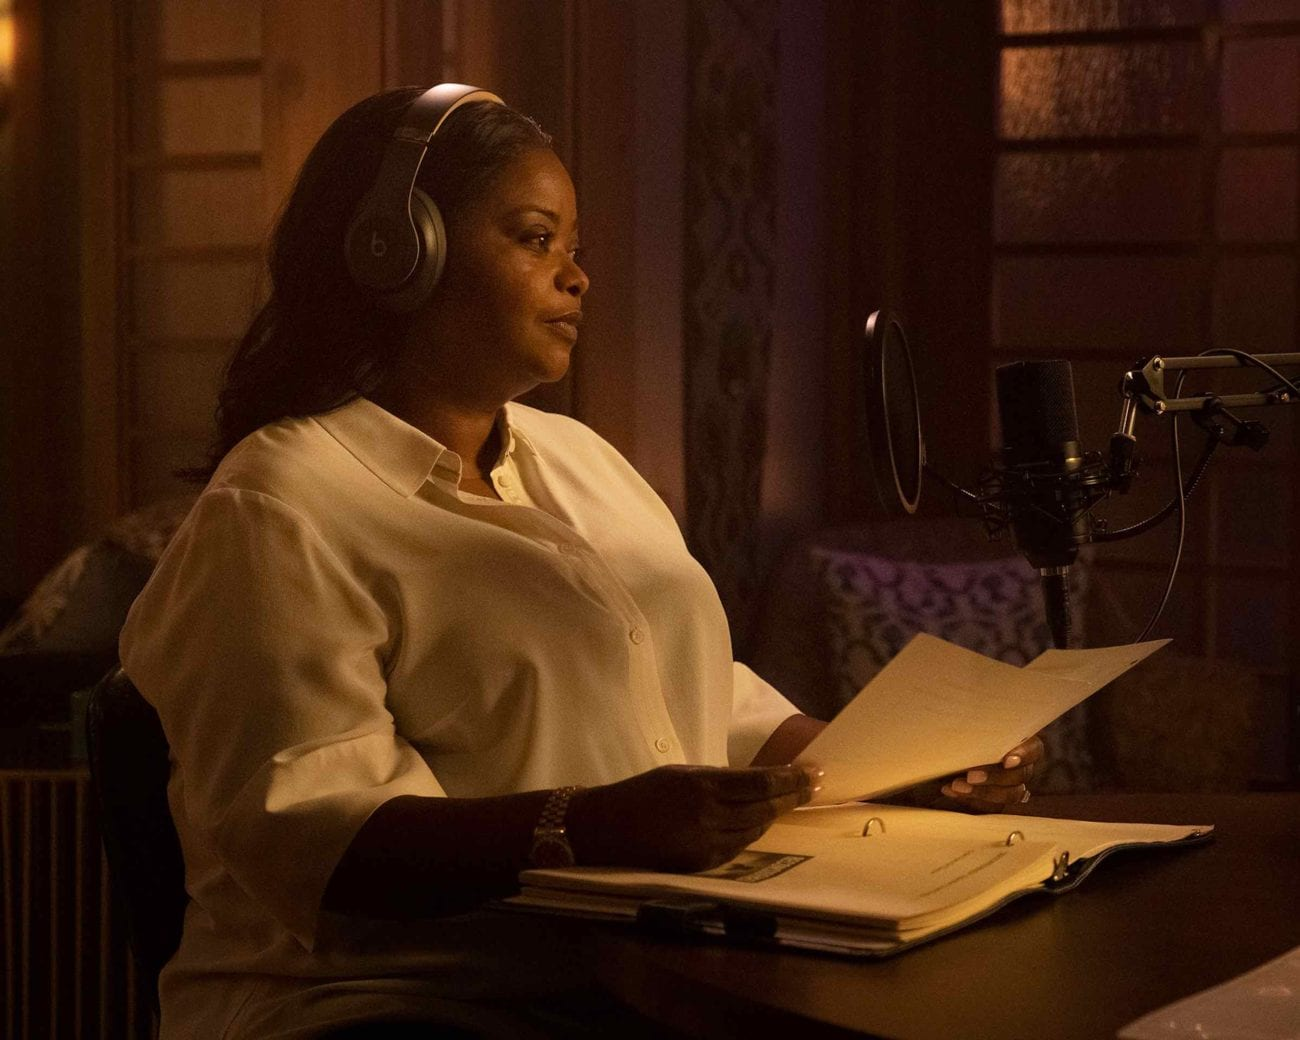 Apple TV+ continues to add to its streaming repertoire with legal drama 'Truth Be Told', starring Octavia Spencer, Aaron Paul, and Lizzy Caplan.